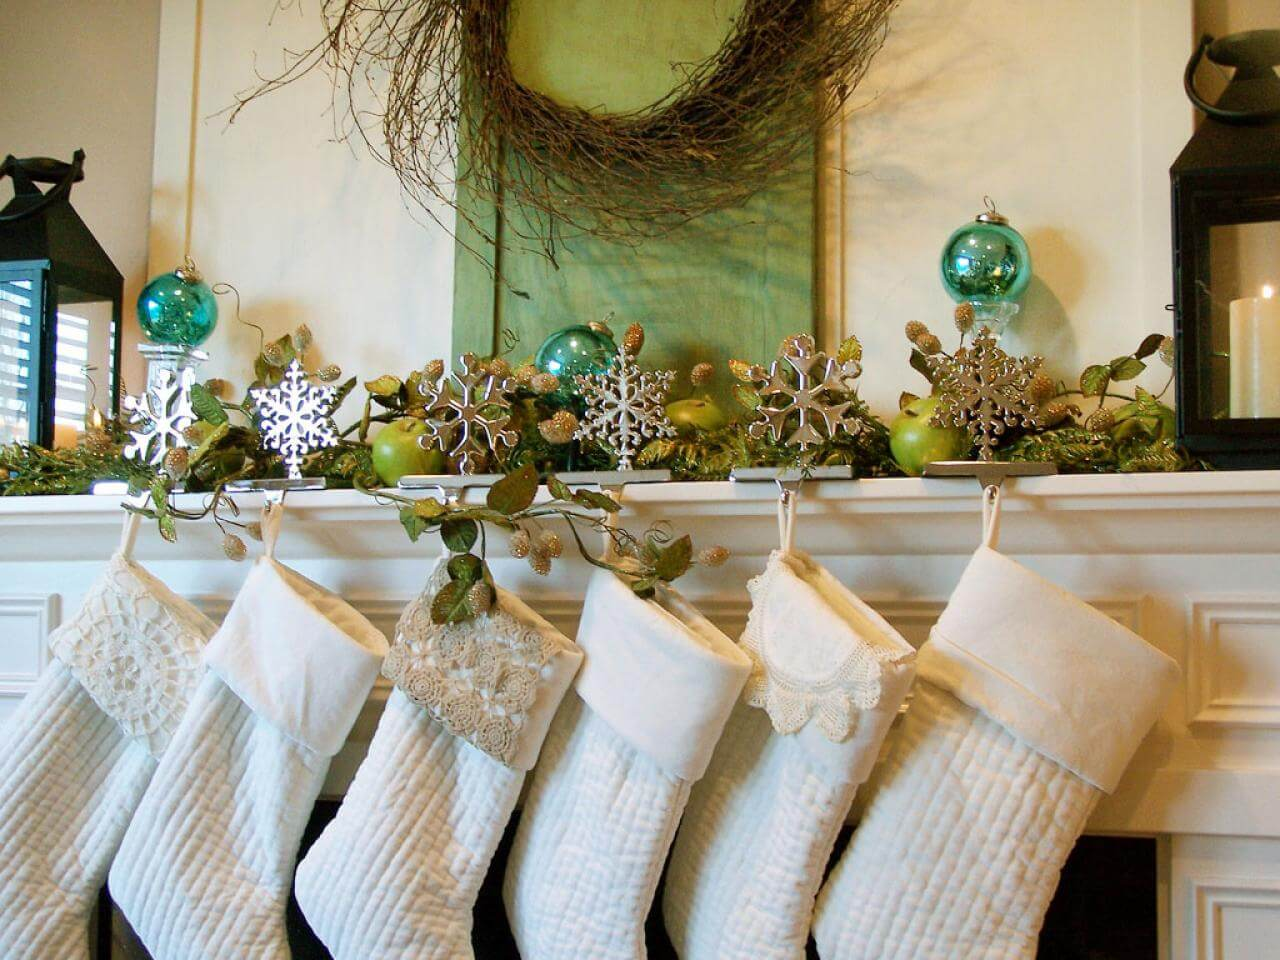 Stocking all neat in a row adorning your fireplace